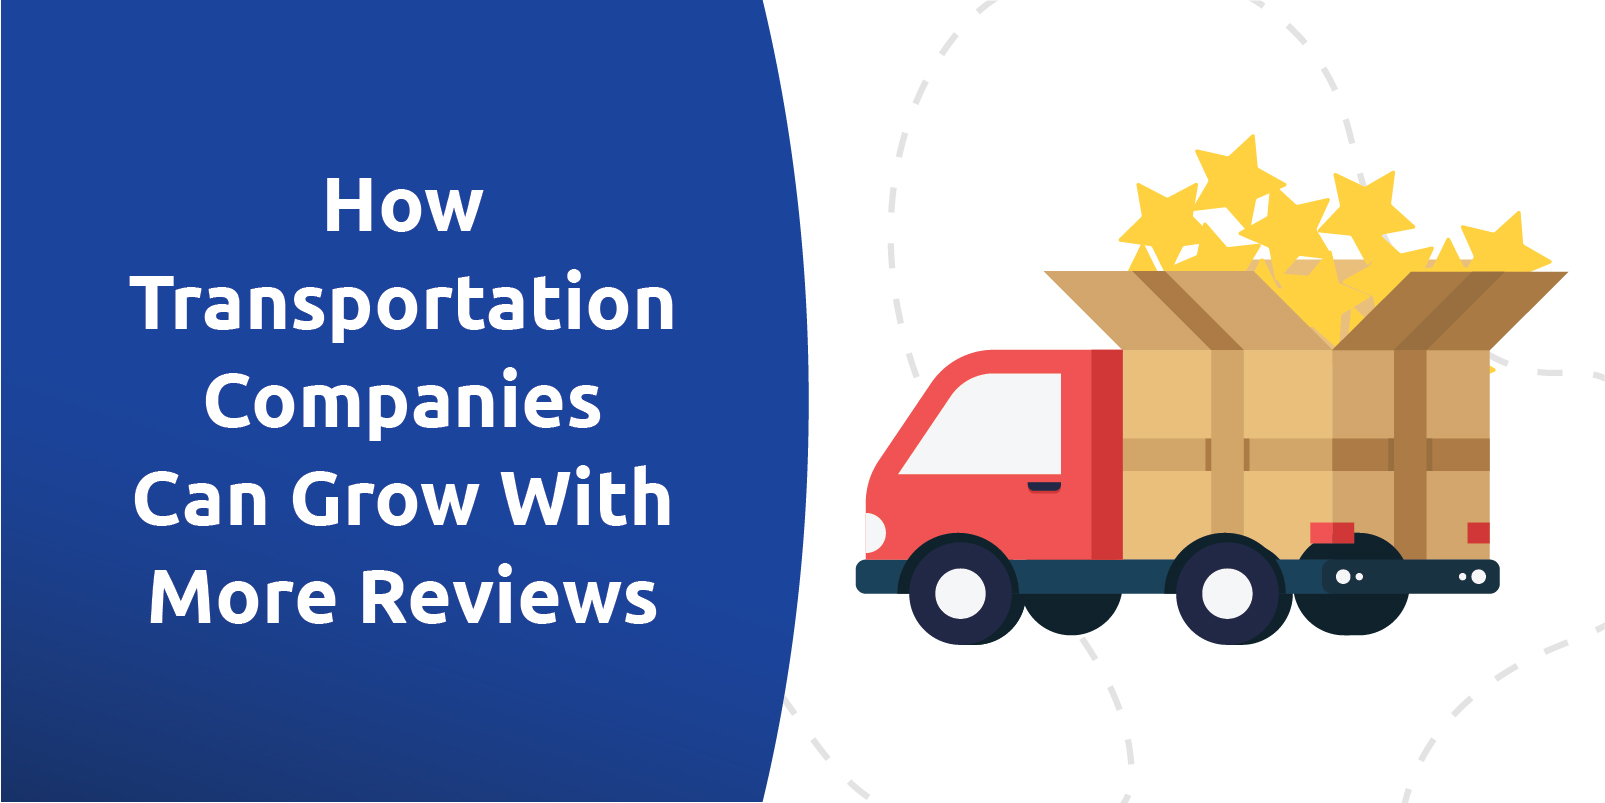 How More Reviews Help Transportation Companies Grow